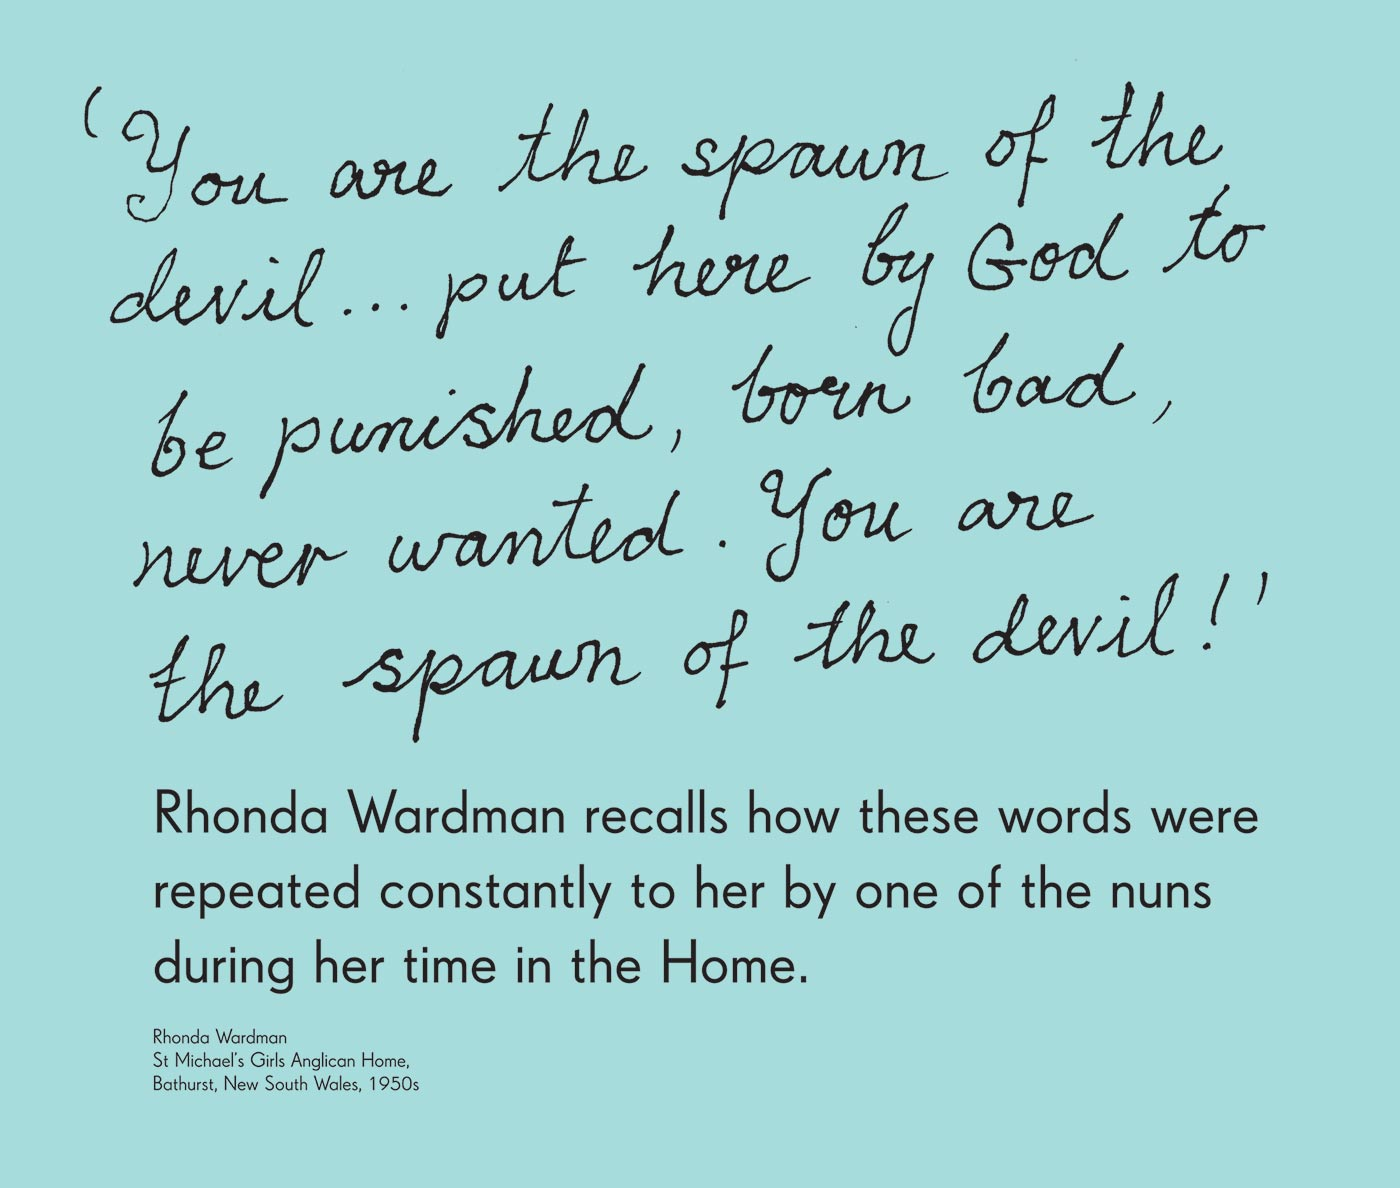 Exhibition graphic panel that reads: 'You are the spawn of the devil ... put here by God to be punished, born bad, never wanted. You are the spawn of the devil!' Rhonda Wardman recalled how these words were repeated constantly to her by one of the nuns during her time in the Home. Attributed to 'Rhonda Wardman, St Michael's Girls Anglican Home, Bathurst, New South Wales, 1950s'. - click to view larger image